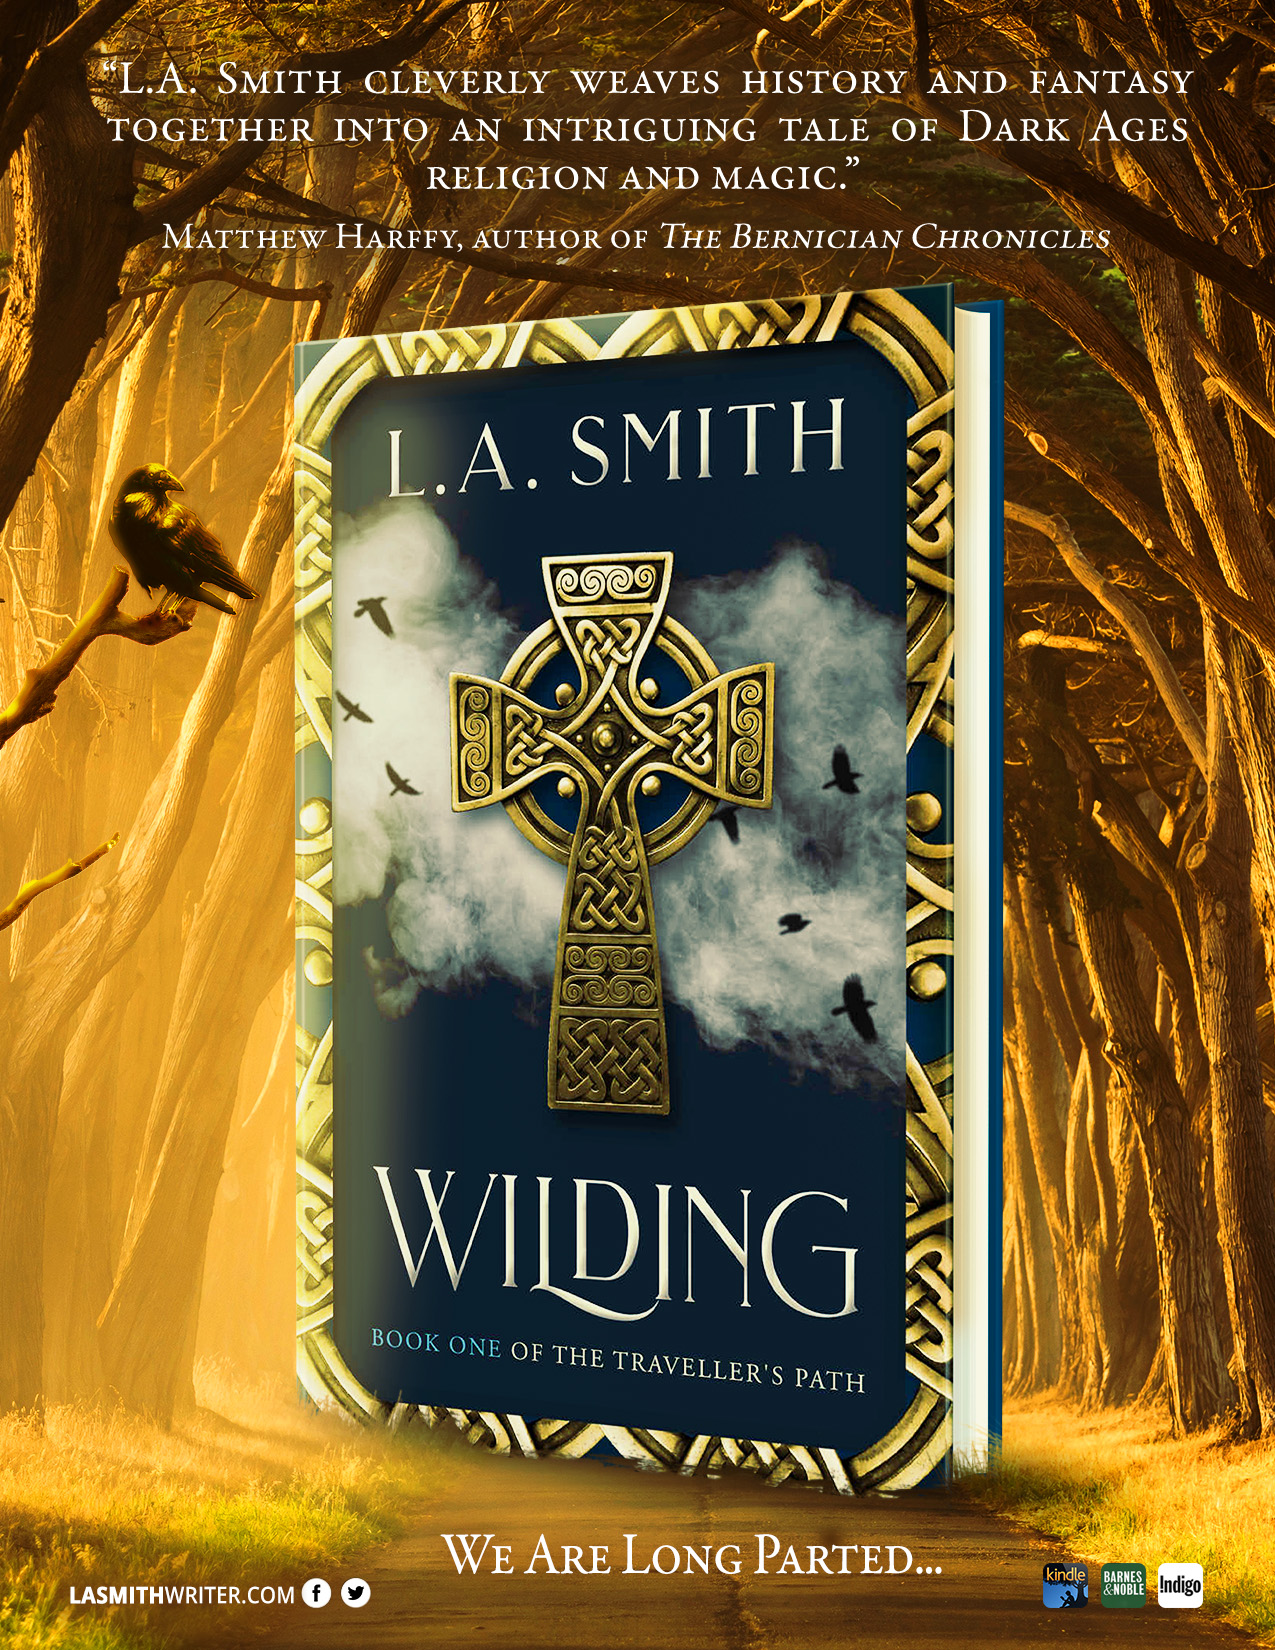 Wilding by LA Smith